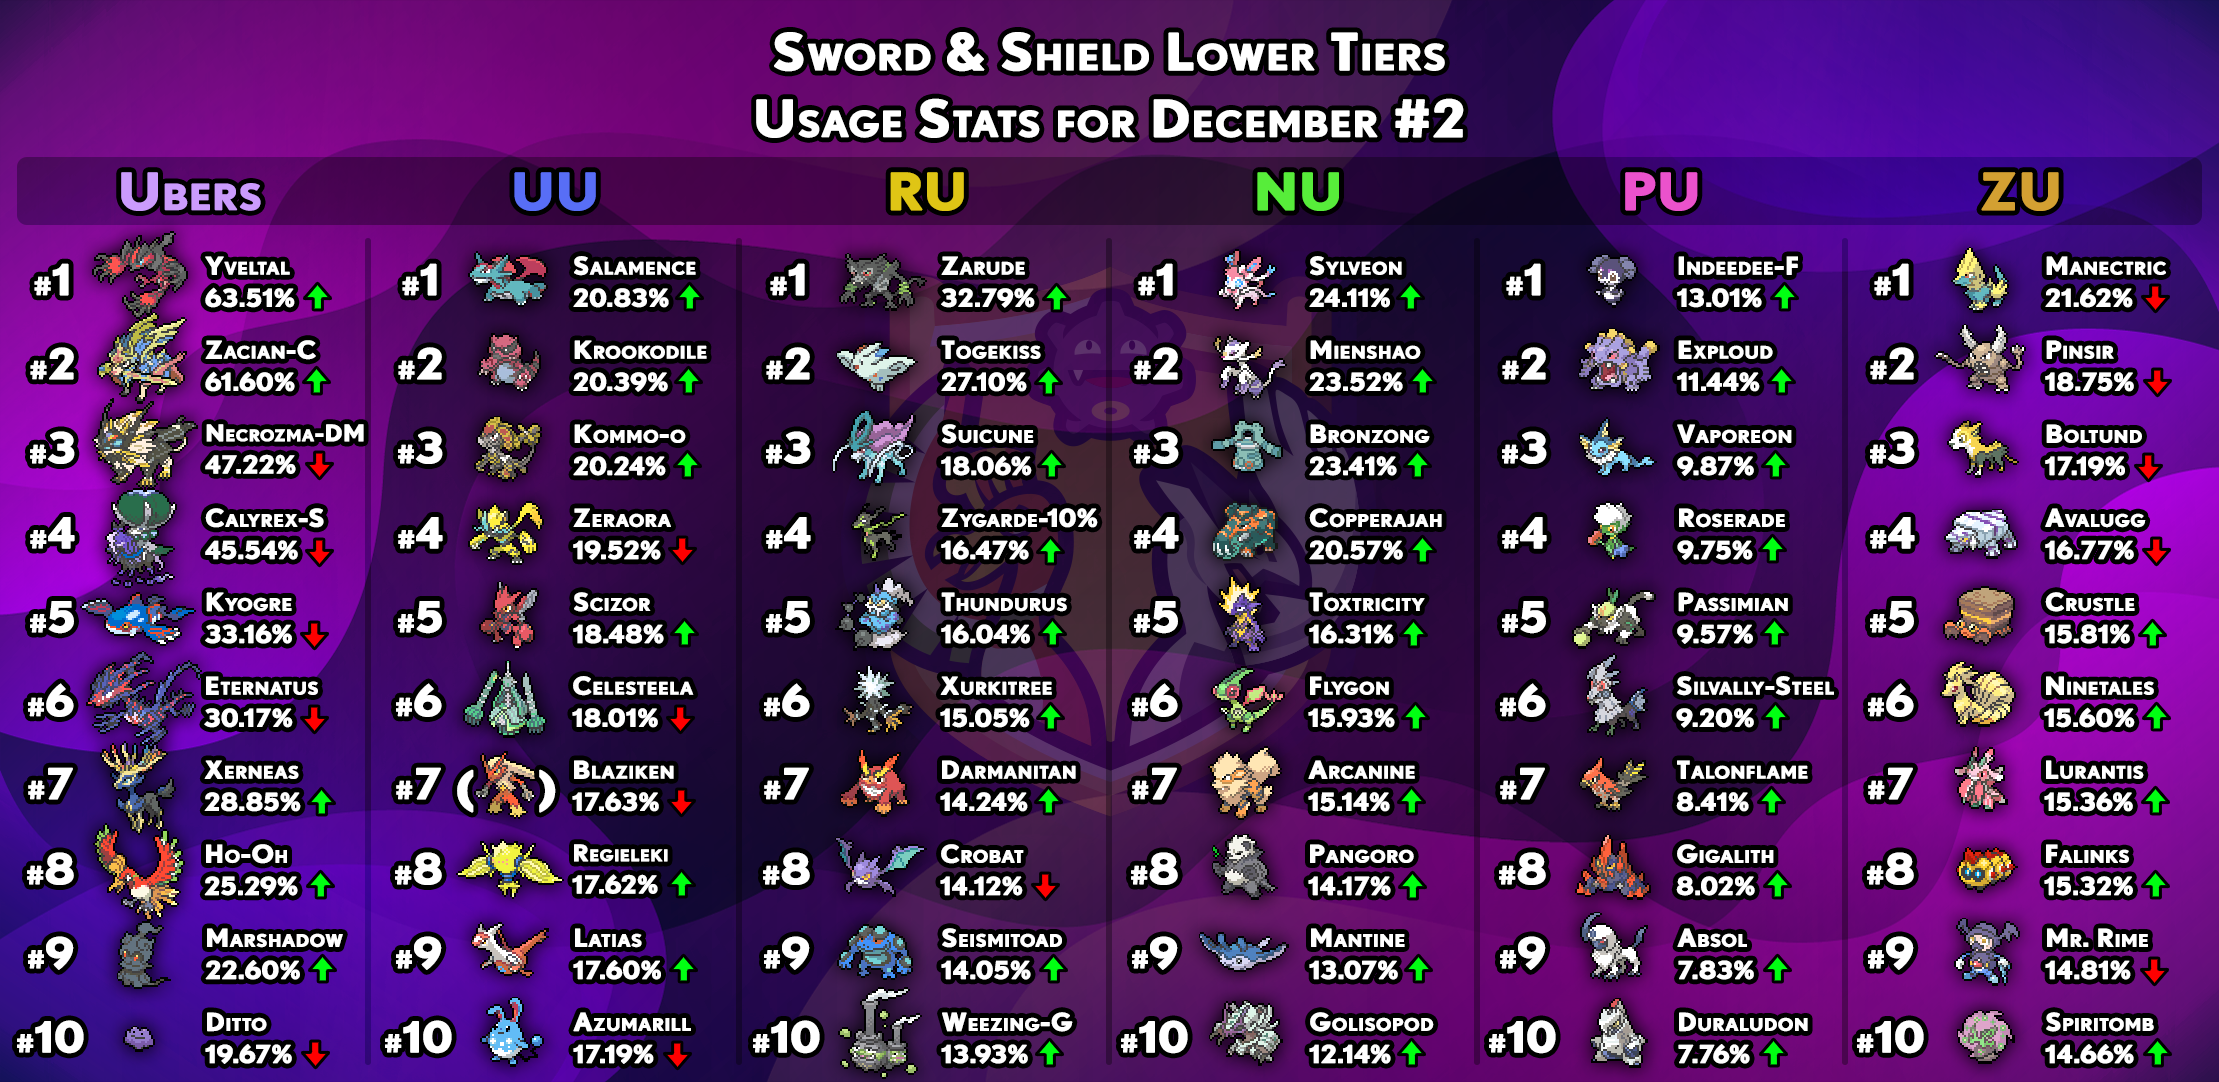 usagestats-gen8-other-tiers-december2.png